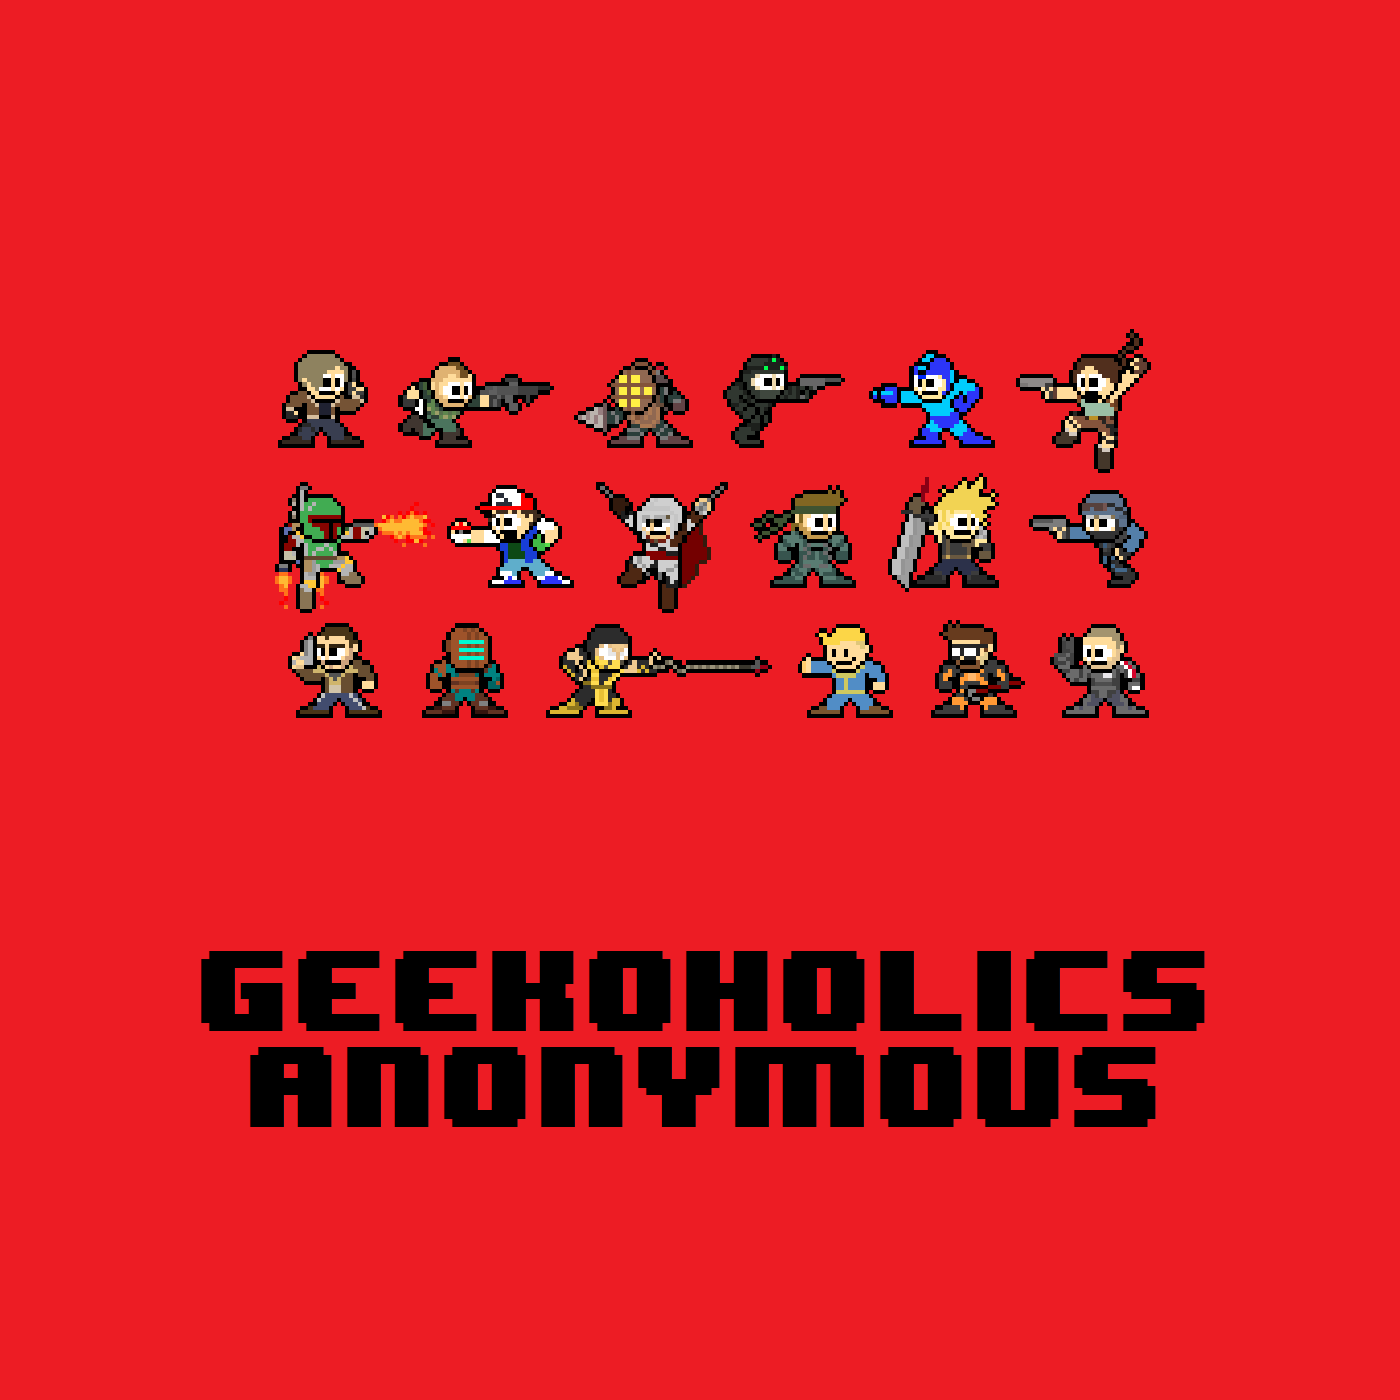 Persona 5 Strikers, Monster Hunter Rise, Falcon and the Winter Soldier, Justice League and more - Geekoholics Anonymous Podcast 298 show art